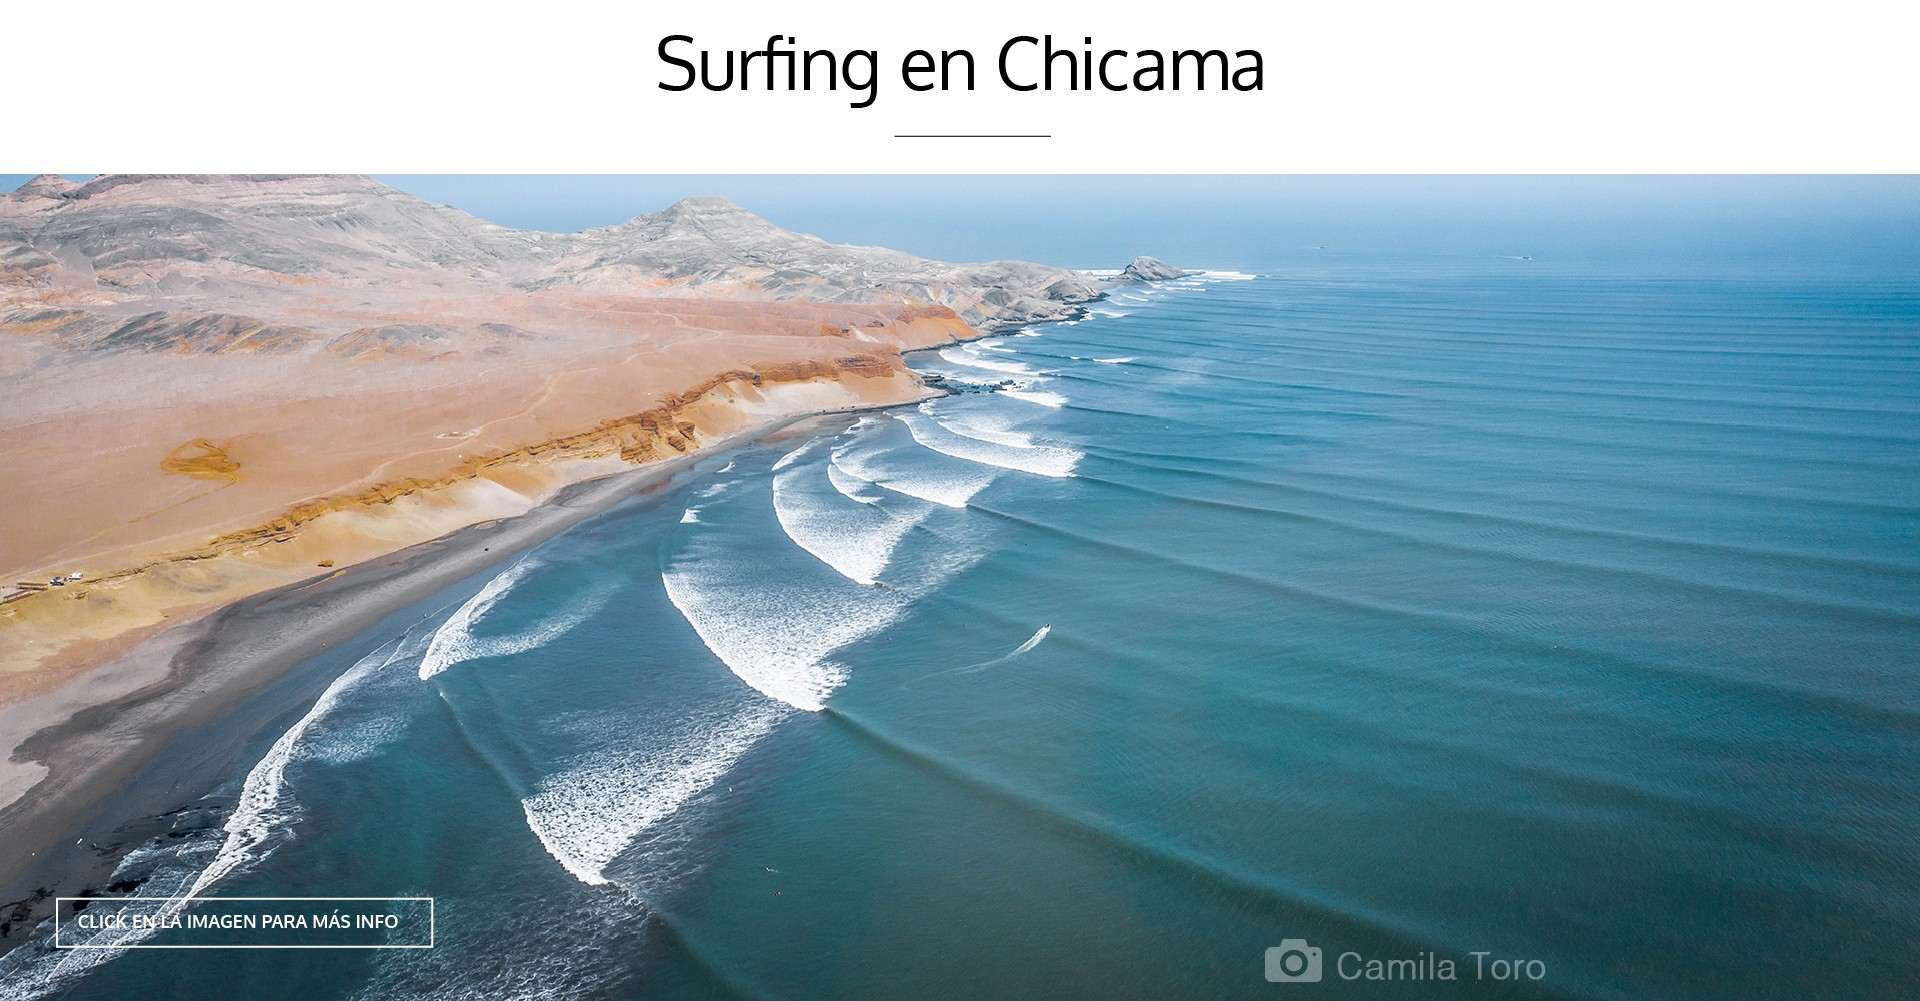 SURFING EN CHICAMA